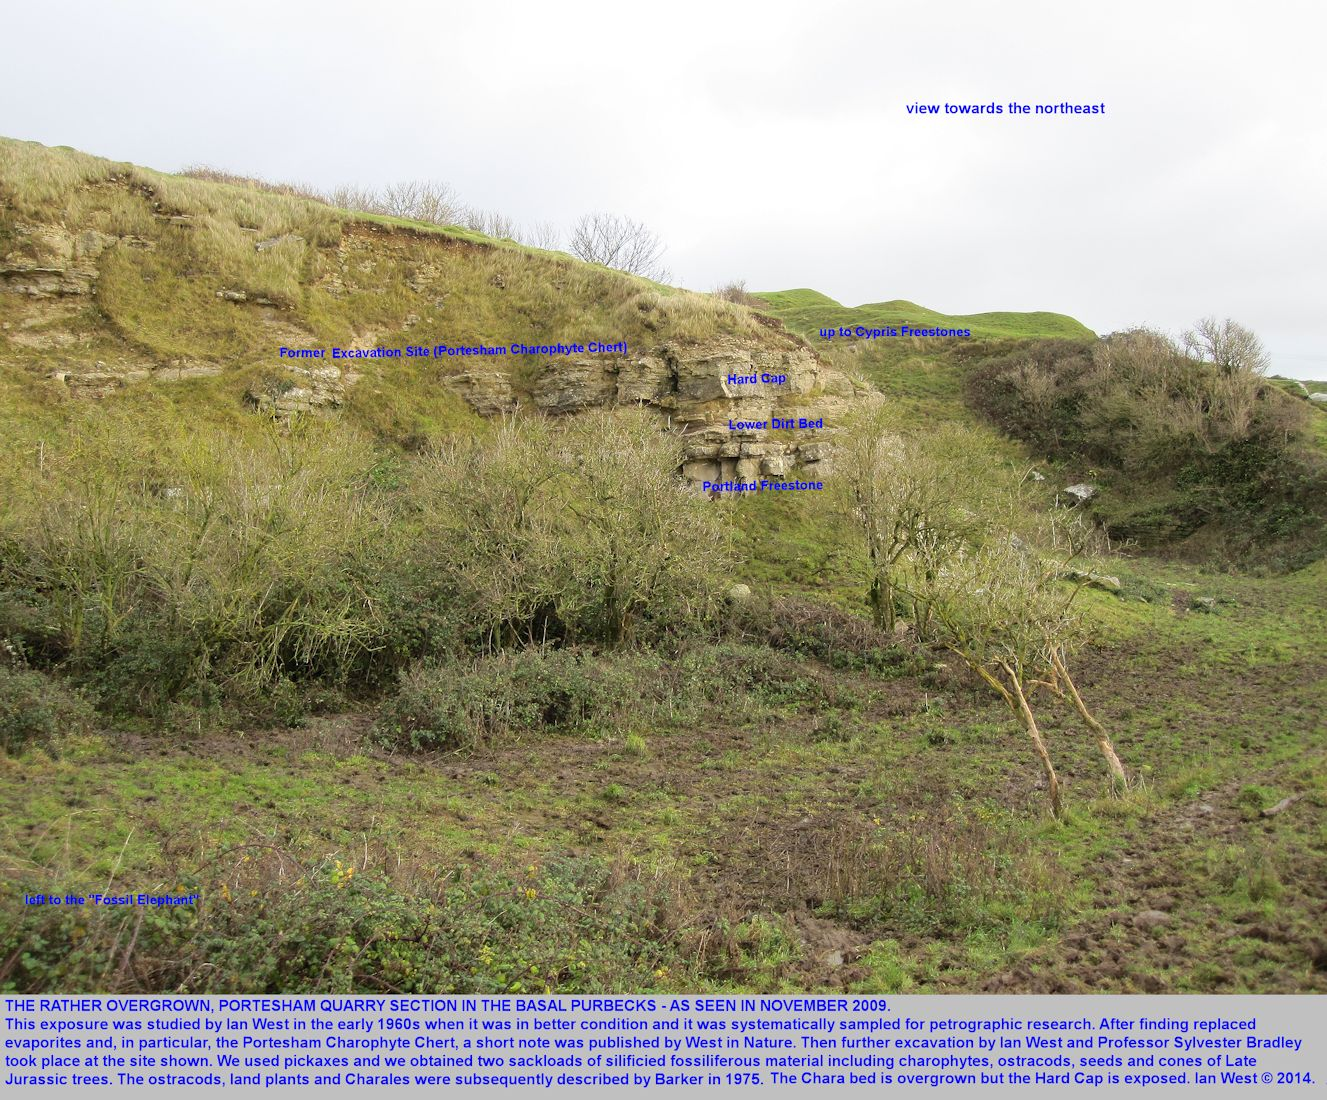 A broad introductory view of Portesham Quarry, Dorset, in Portland and Purbeck strata, as seen in November 2009, when much degraded and grassed over